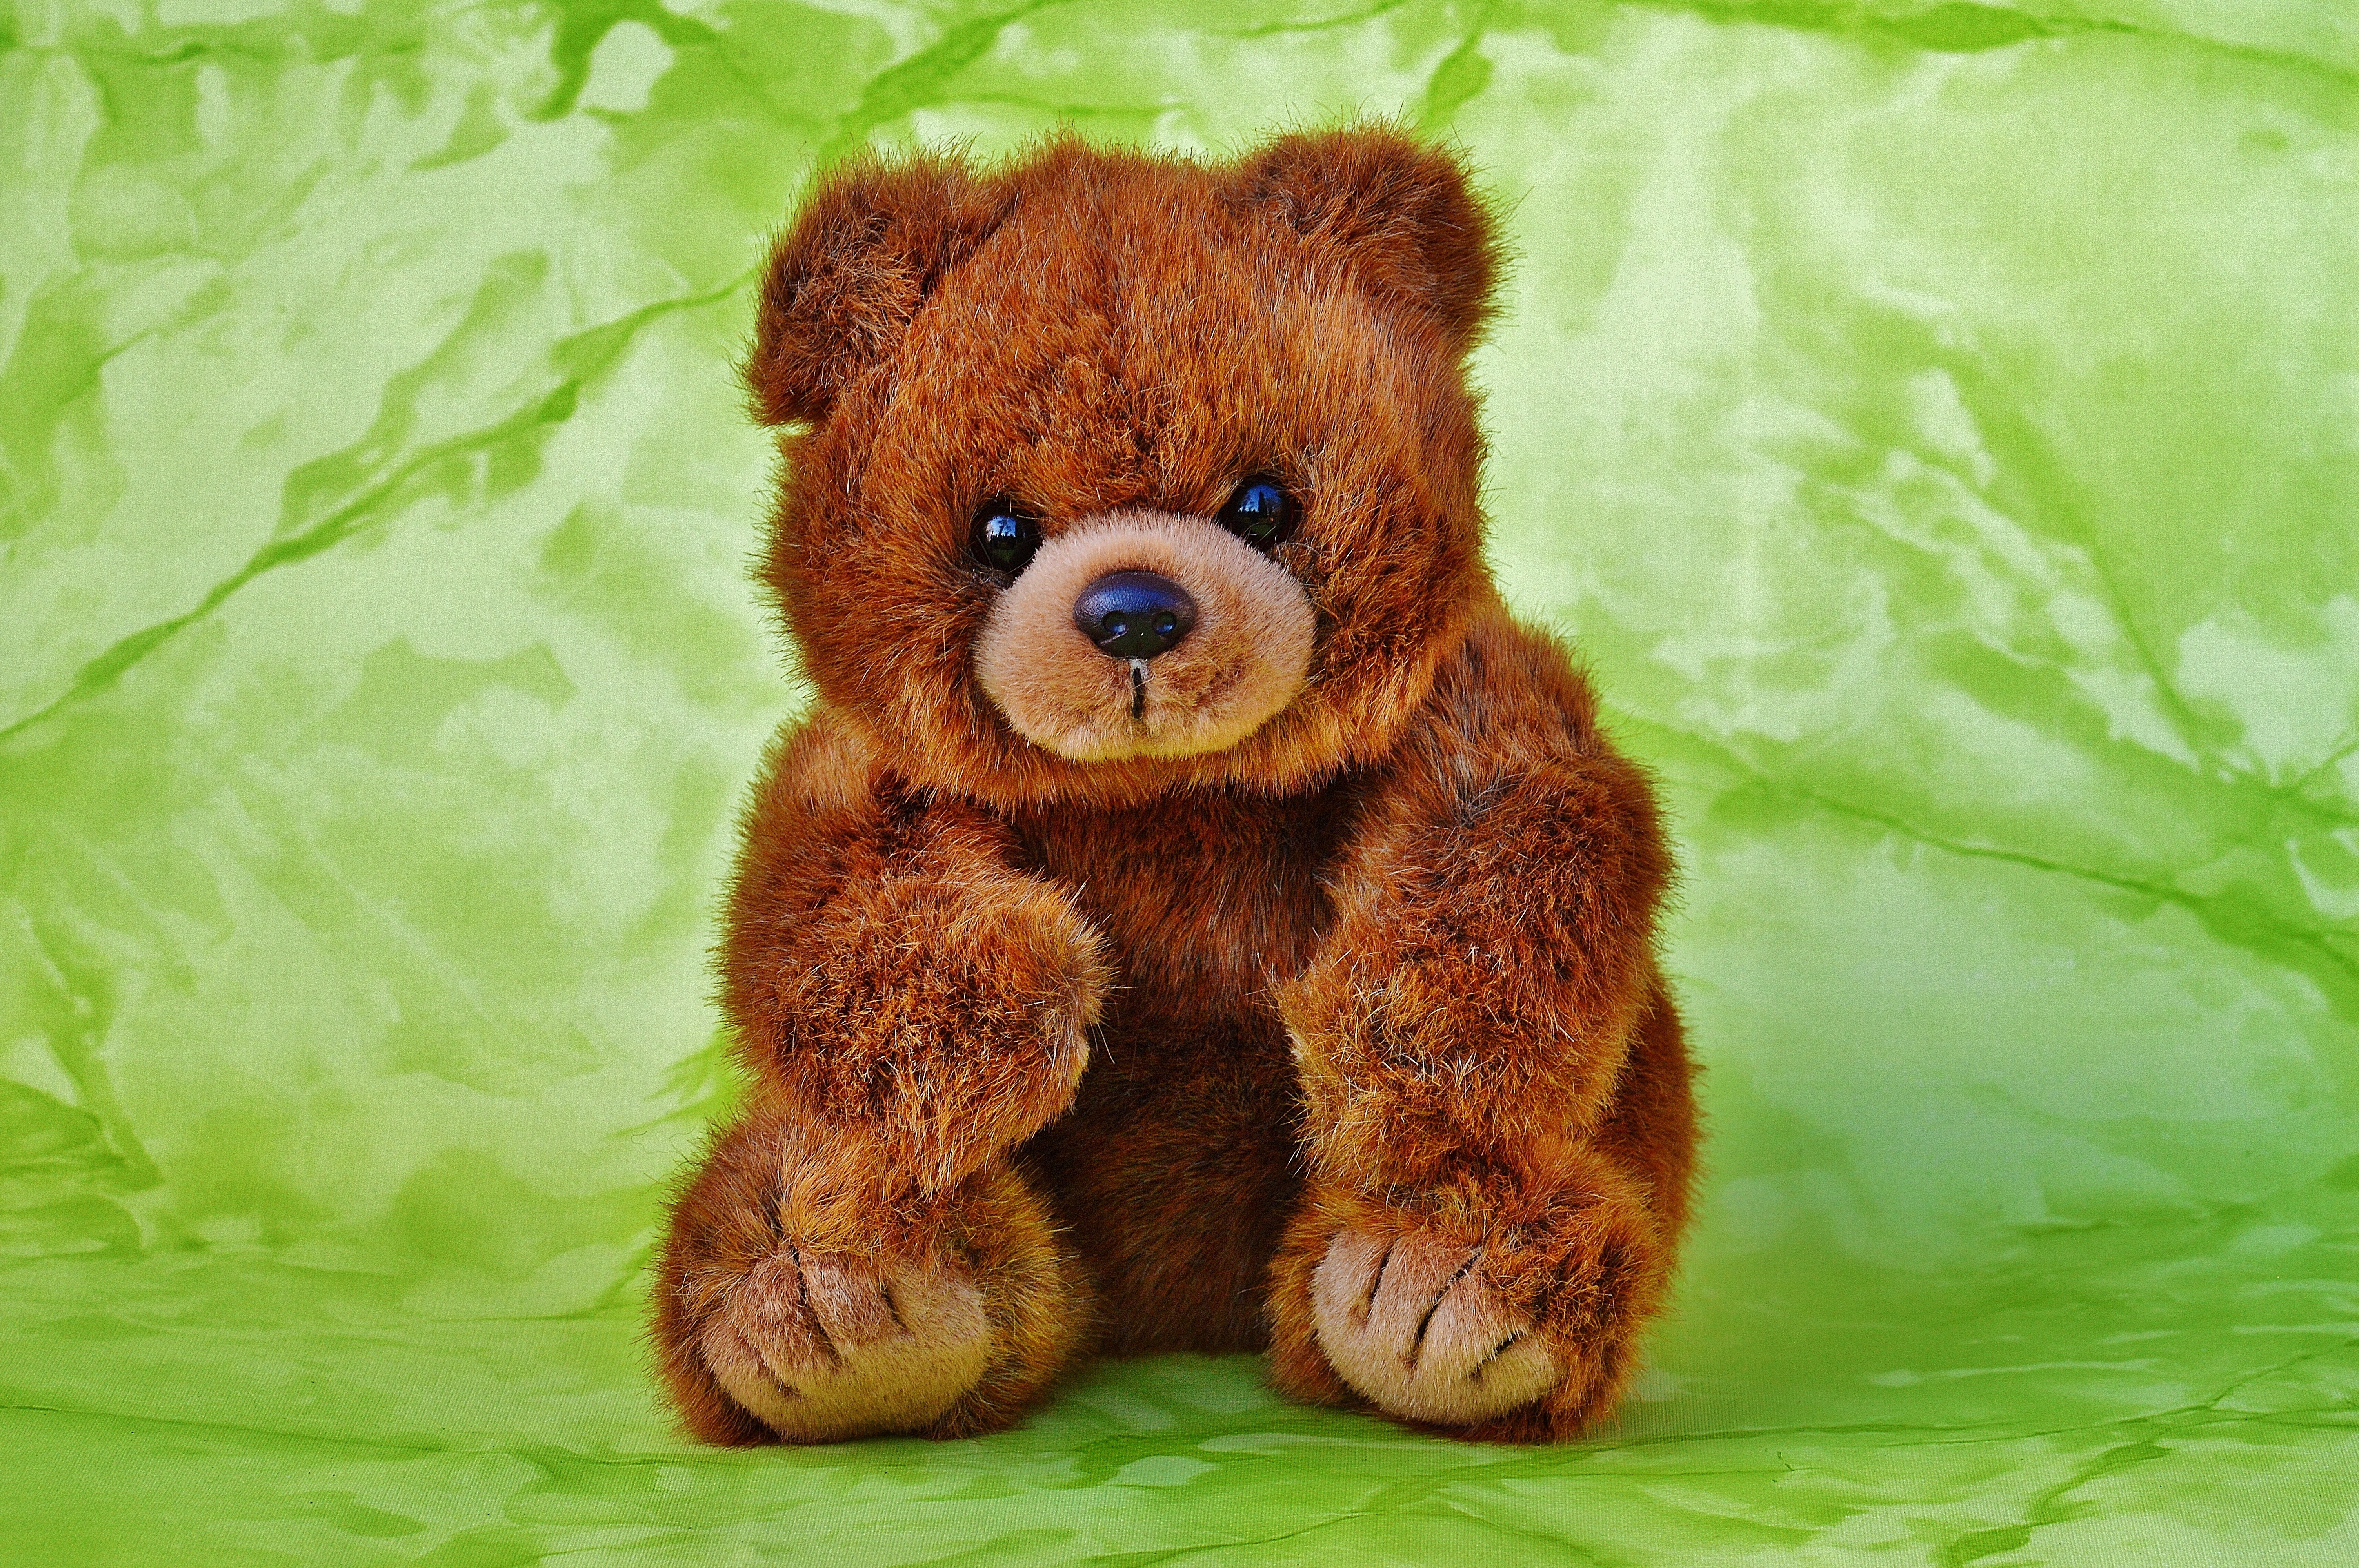 Pictures of brown teddy bears